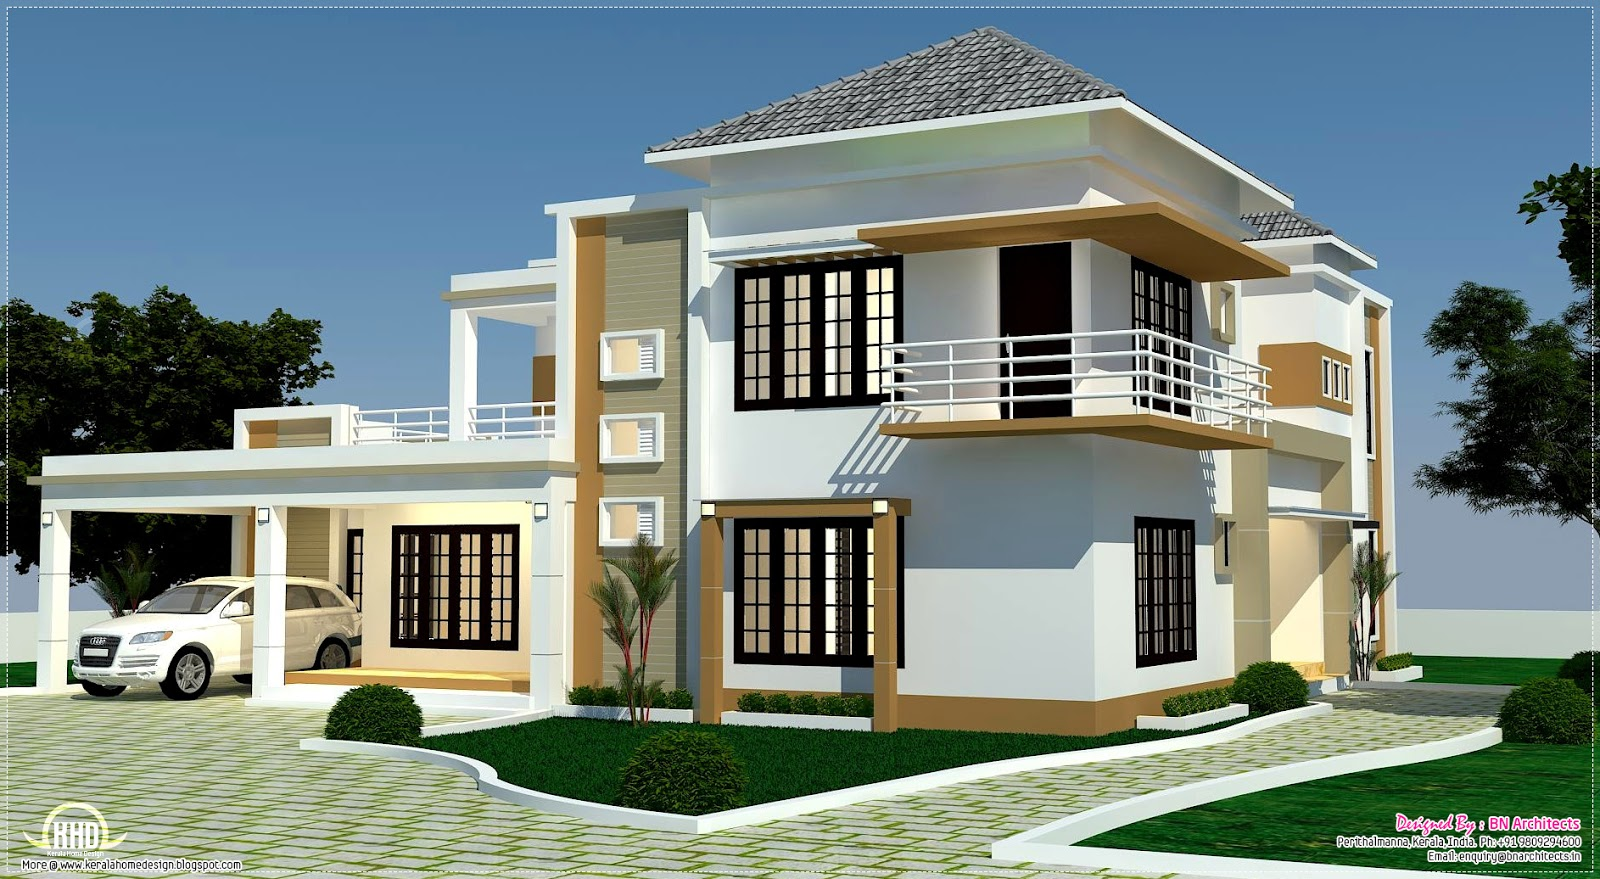 Floor plan 3d views and interiors of 4 bedroom villa for 4 bedroom villa plans